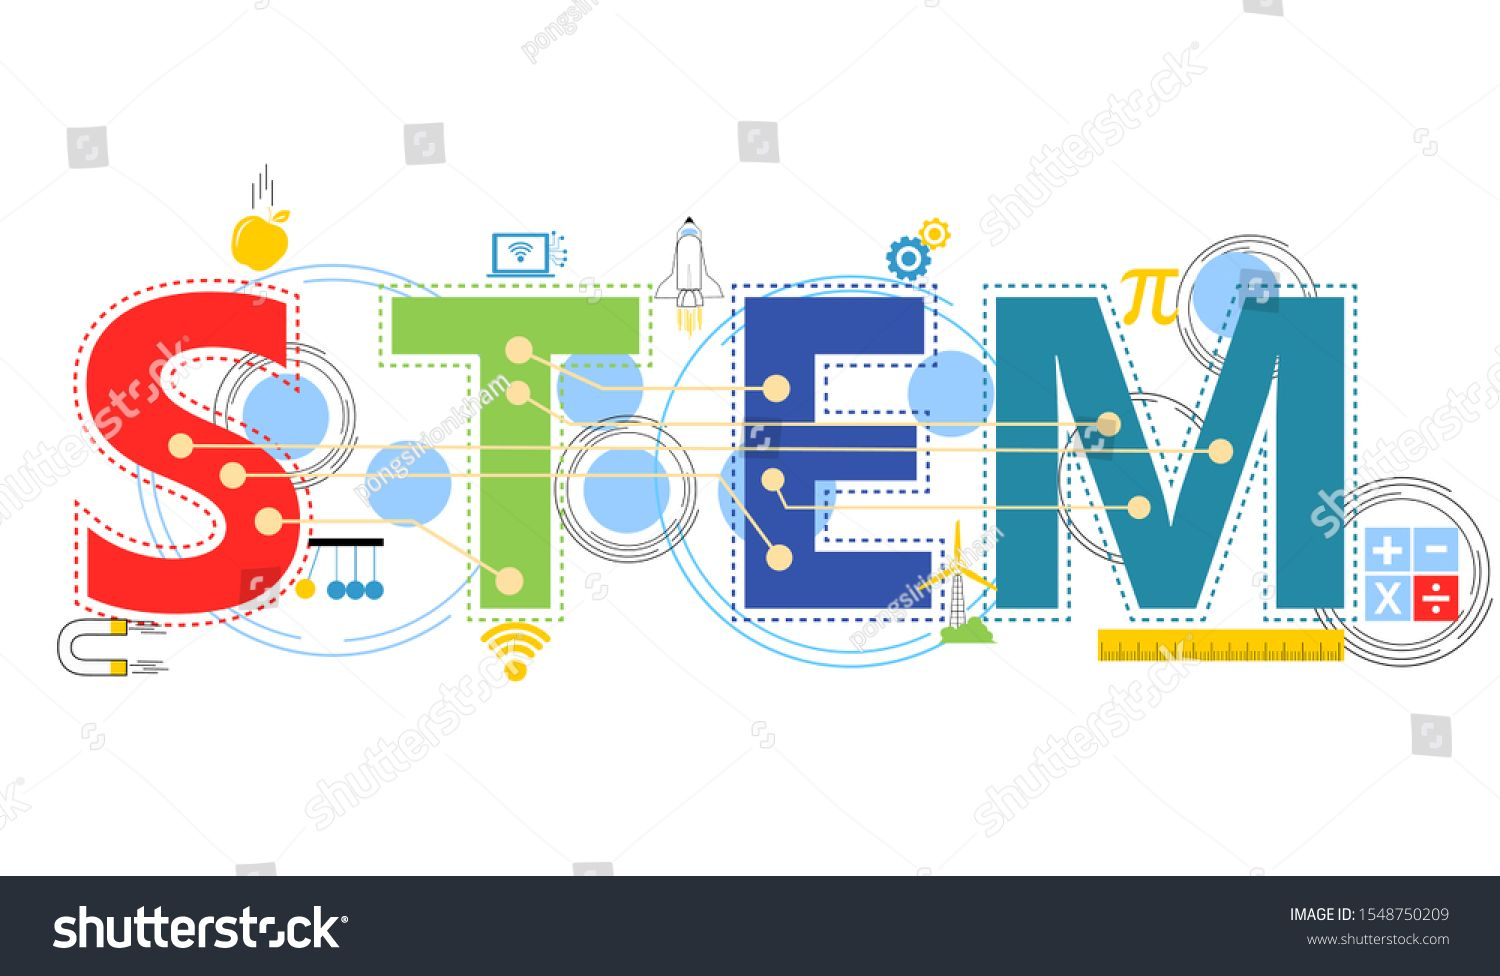 Stem Education Science Technology Engineering Mathematics Gear Calculate Ad Aff Science Technology St Stem Education Science And Technology Education